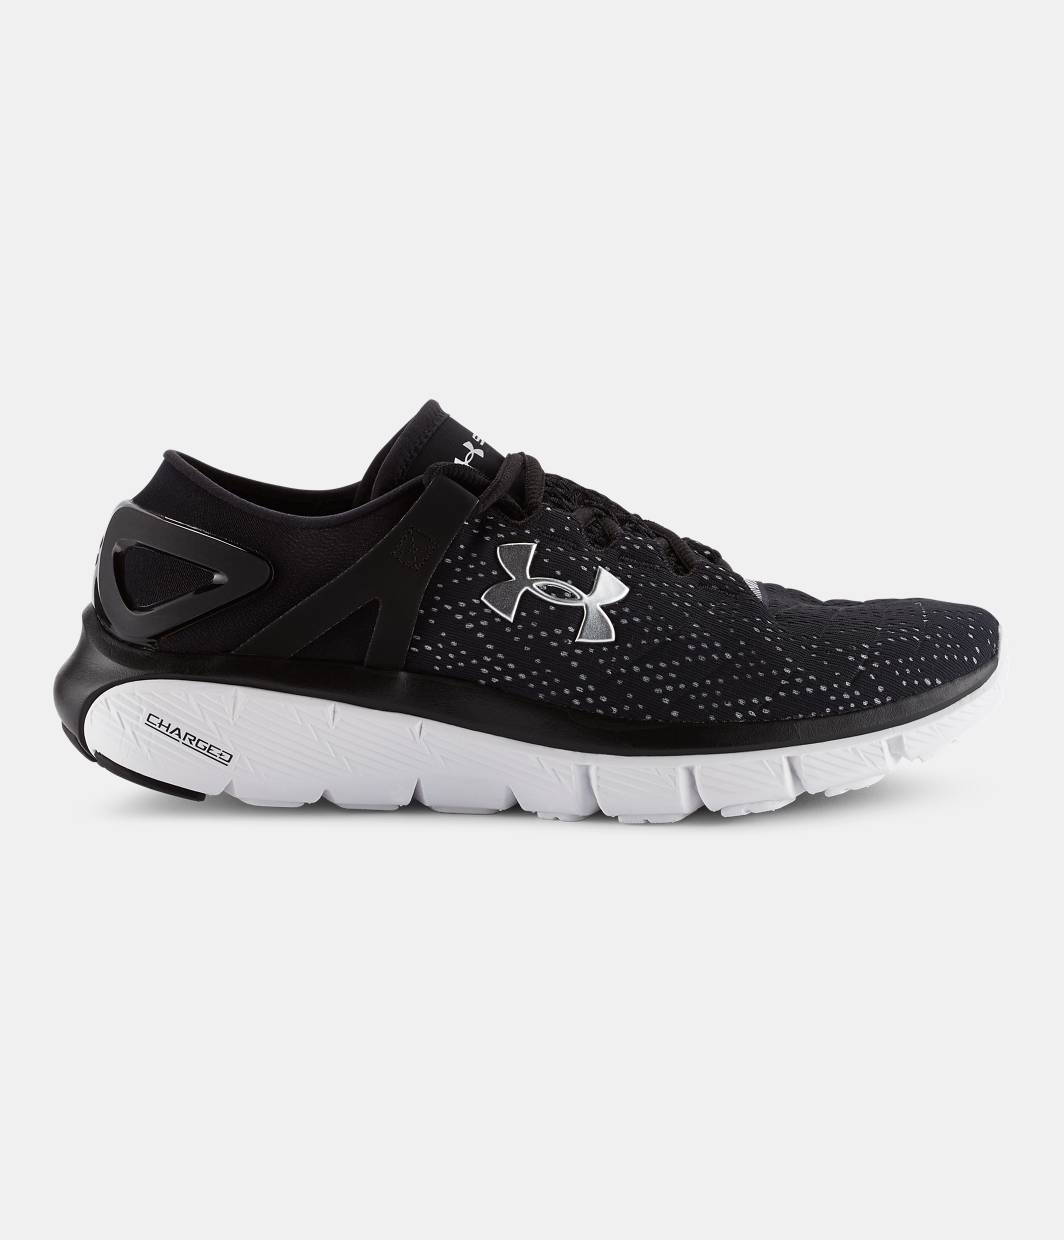 Clearance Under Armour | Canelo Shirt Under Armour | Cheap Under Armour Shoes